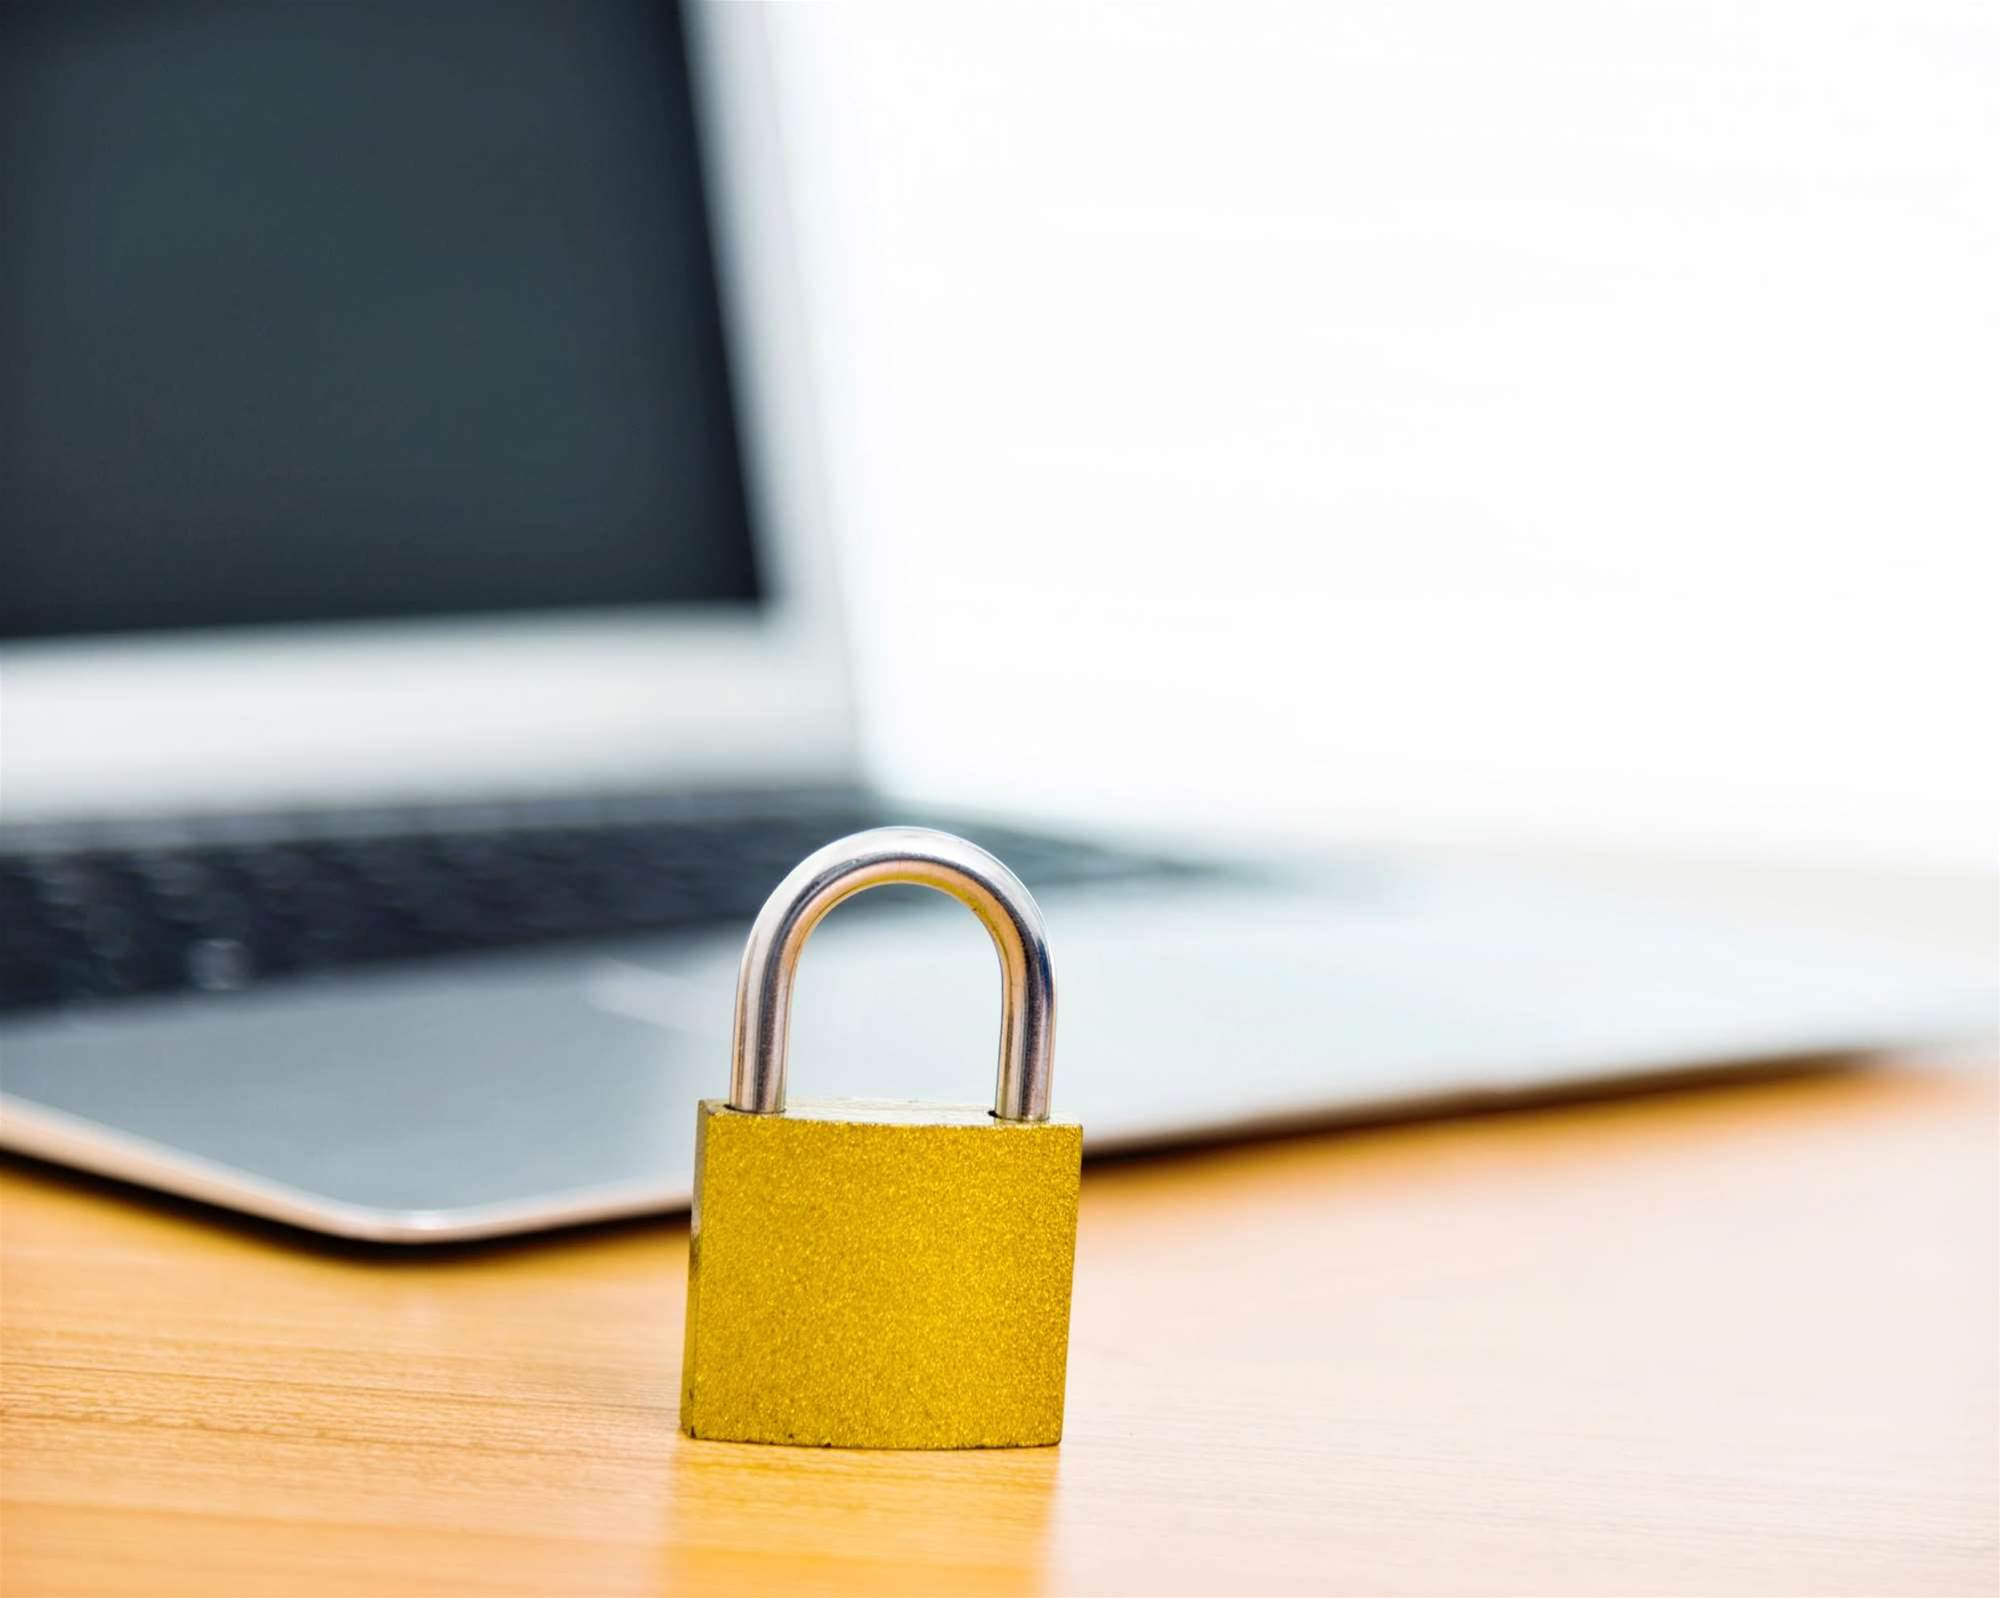 Ransomware attacks on Aussie businesses jump four-fold